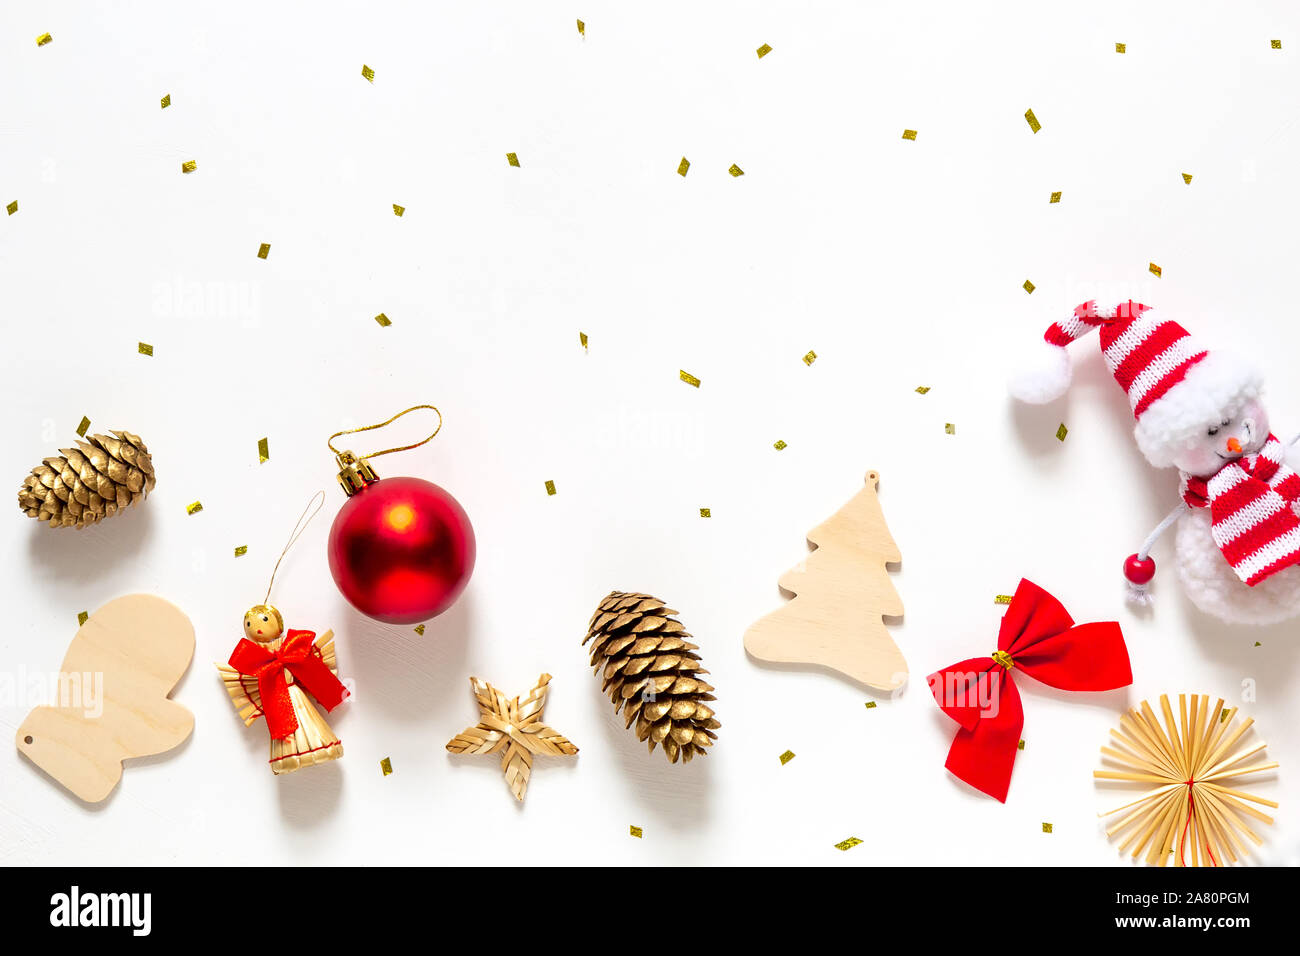 Christmas Decorations In Gold And Red On A White Background